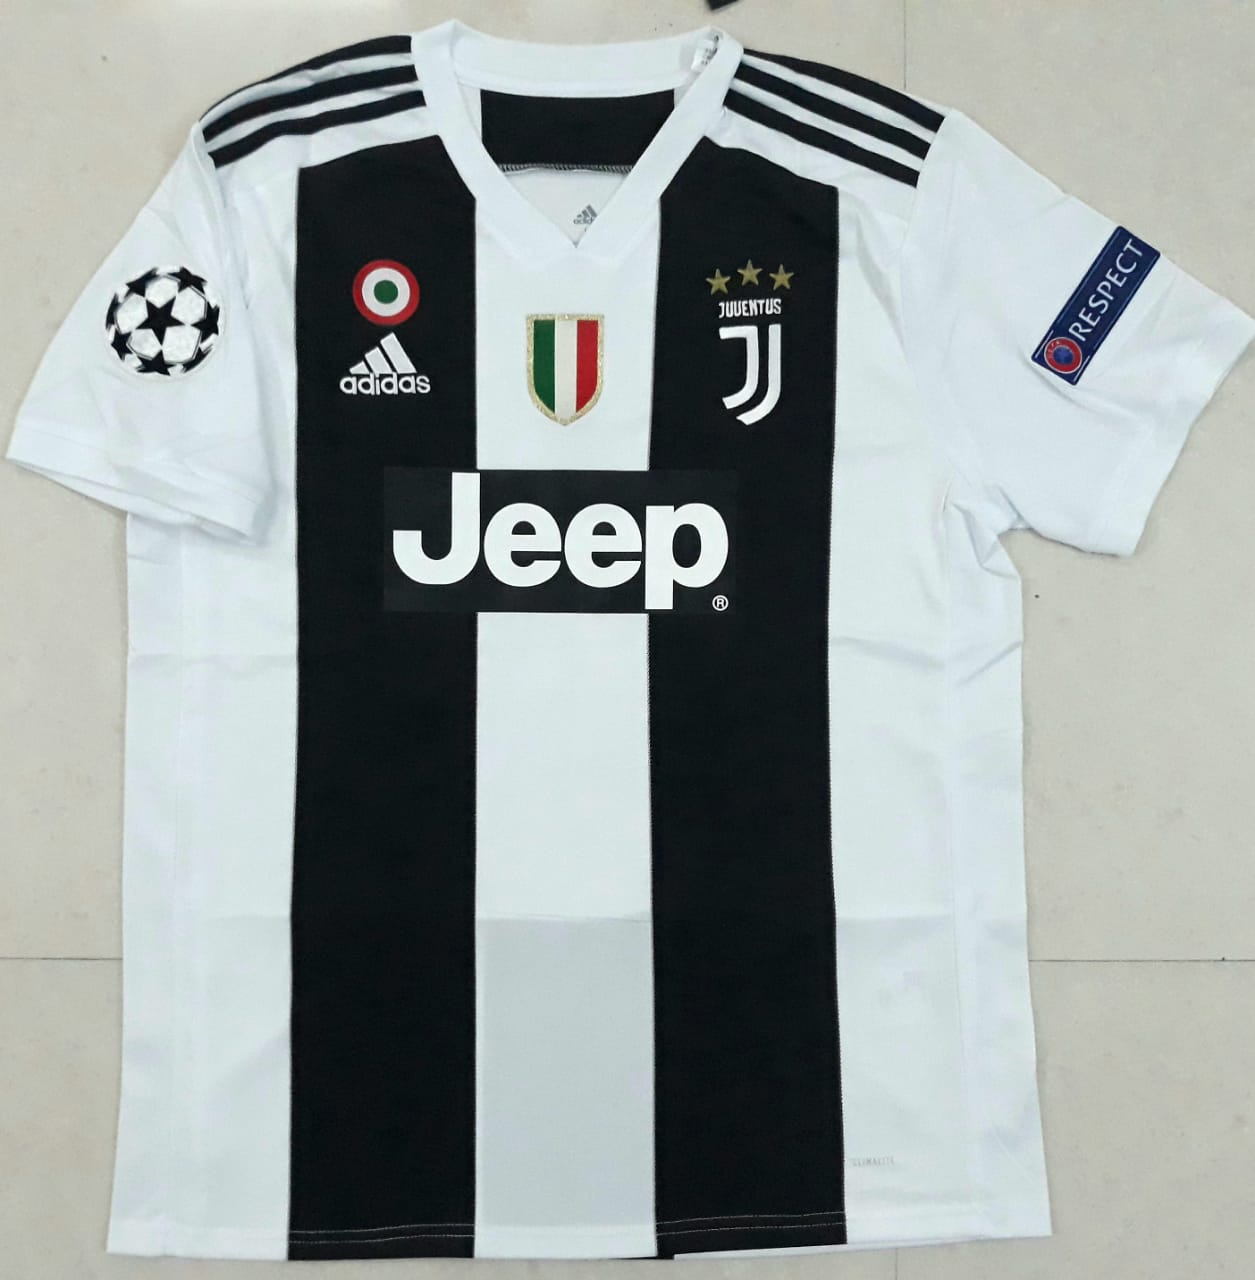 03d4eff1f6f ... Original Dybala Juventus Home Jersey Champions League Edition 2018-19  (with Italia logos) ...